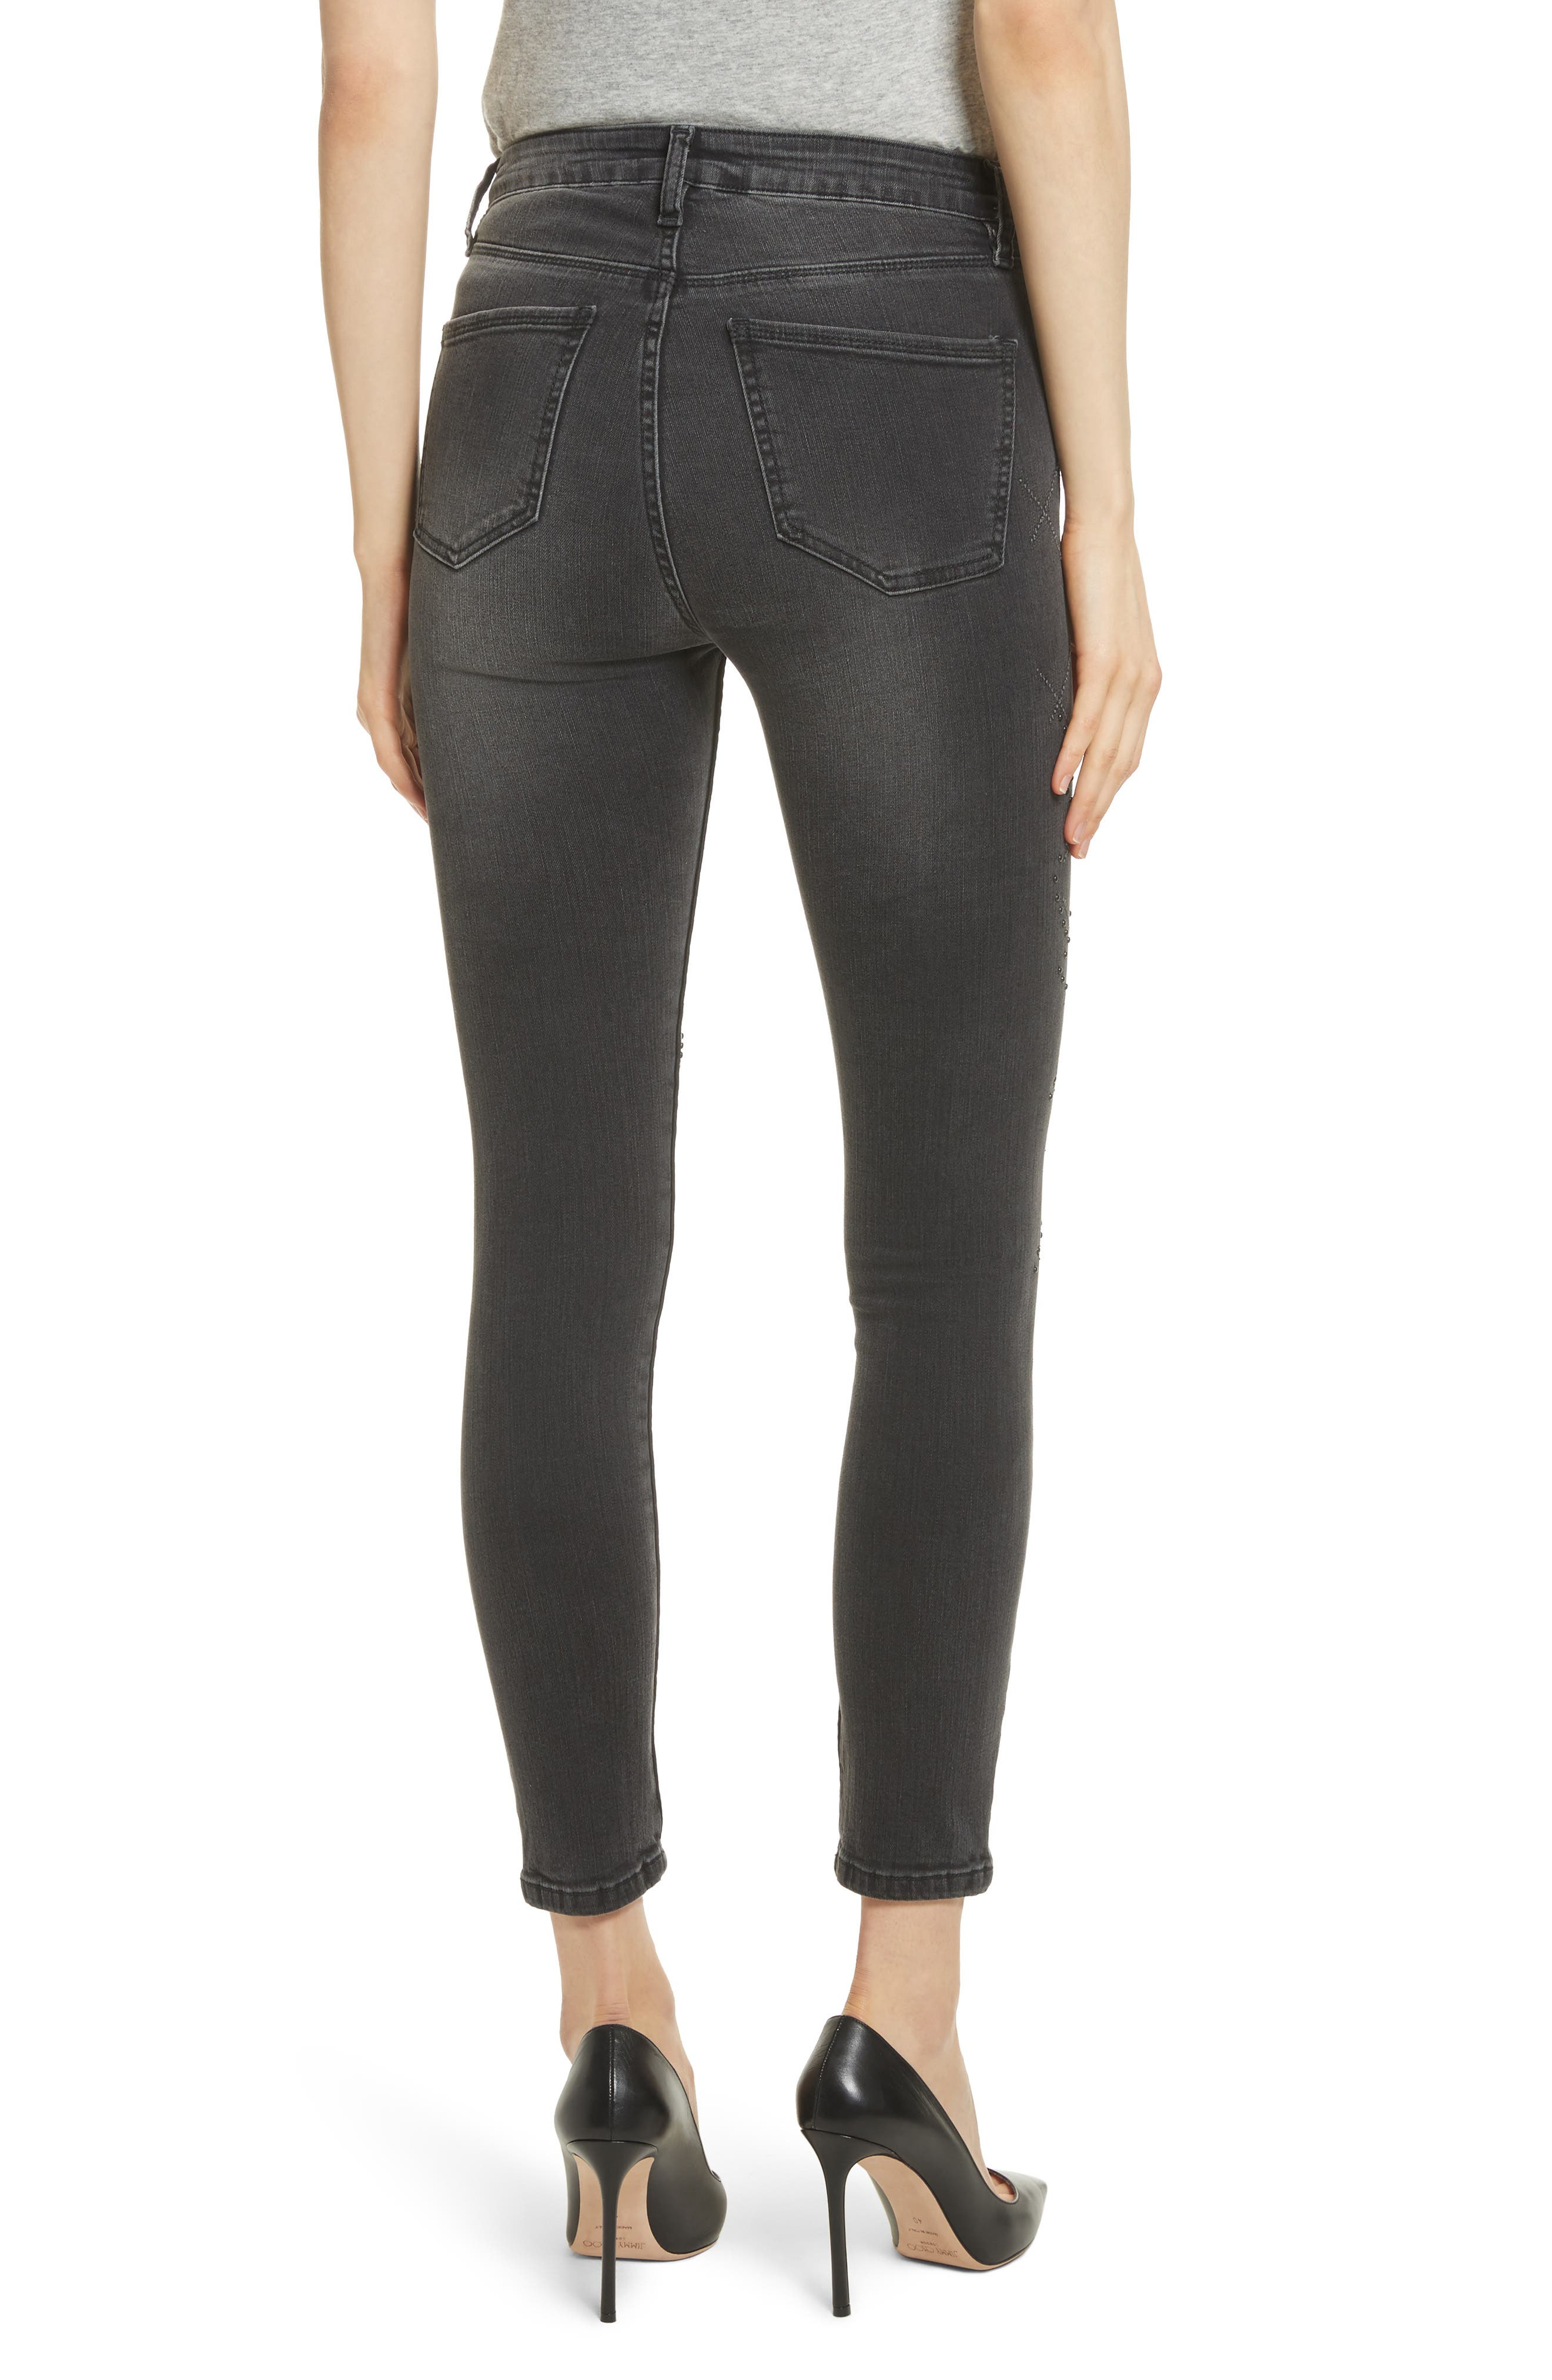 Reina Stud Skinny Jeans,                             Alternate thumbnail 2, color,                             Black Used